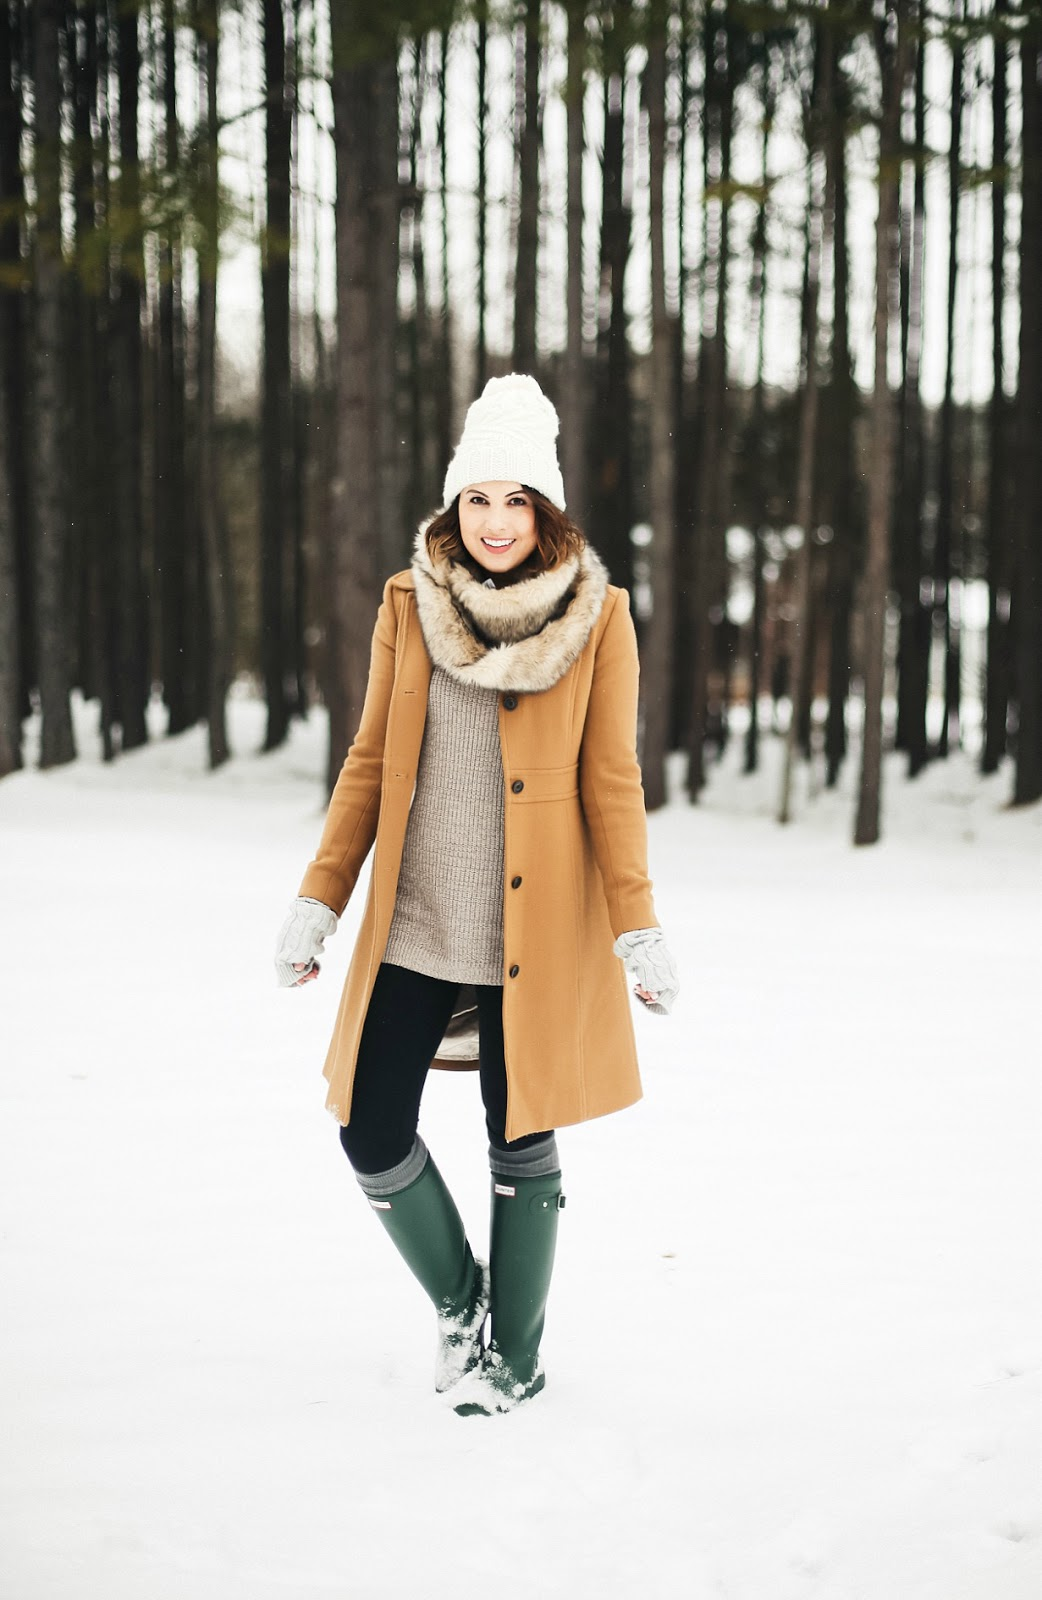 jcrew lady day coat winter outfit